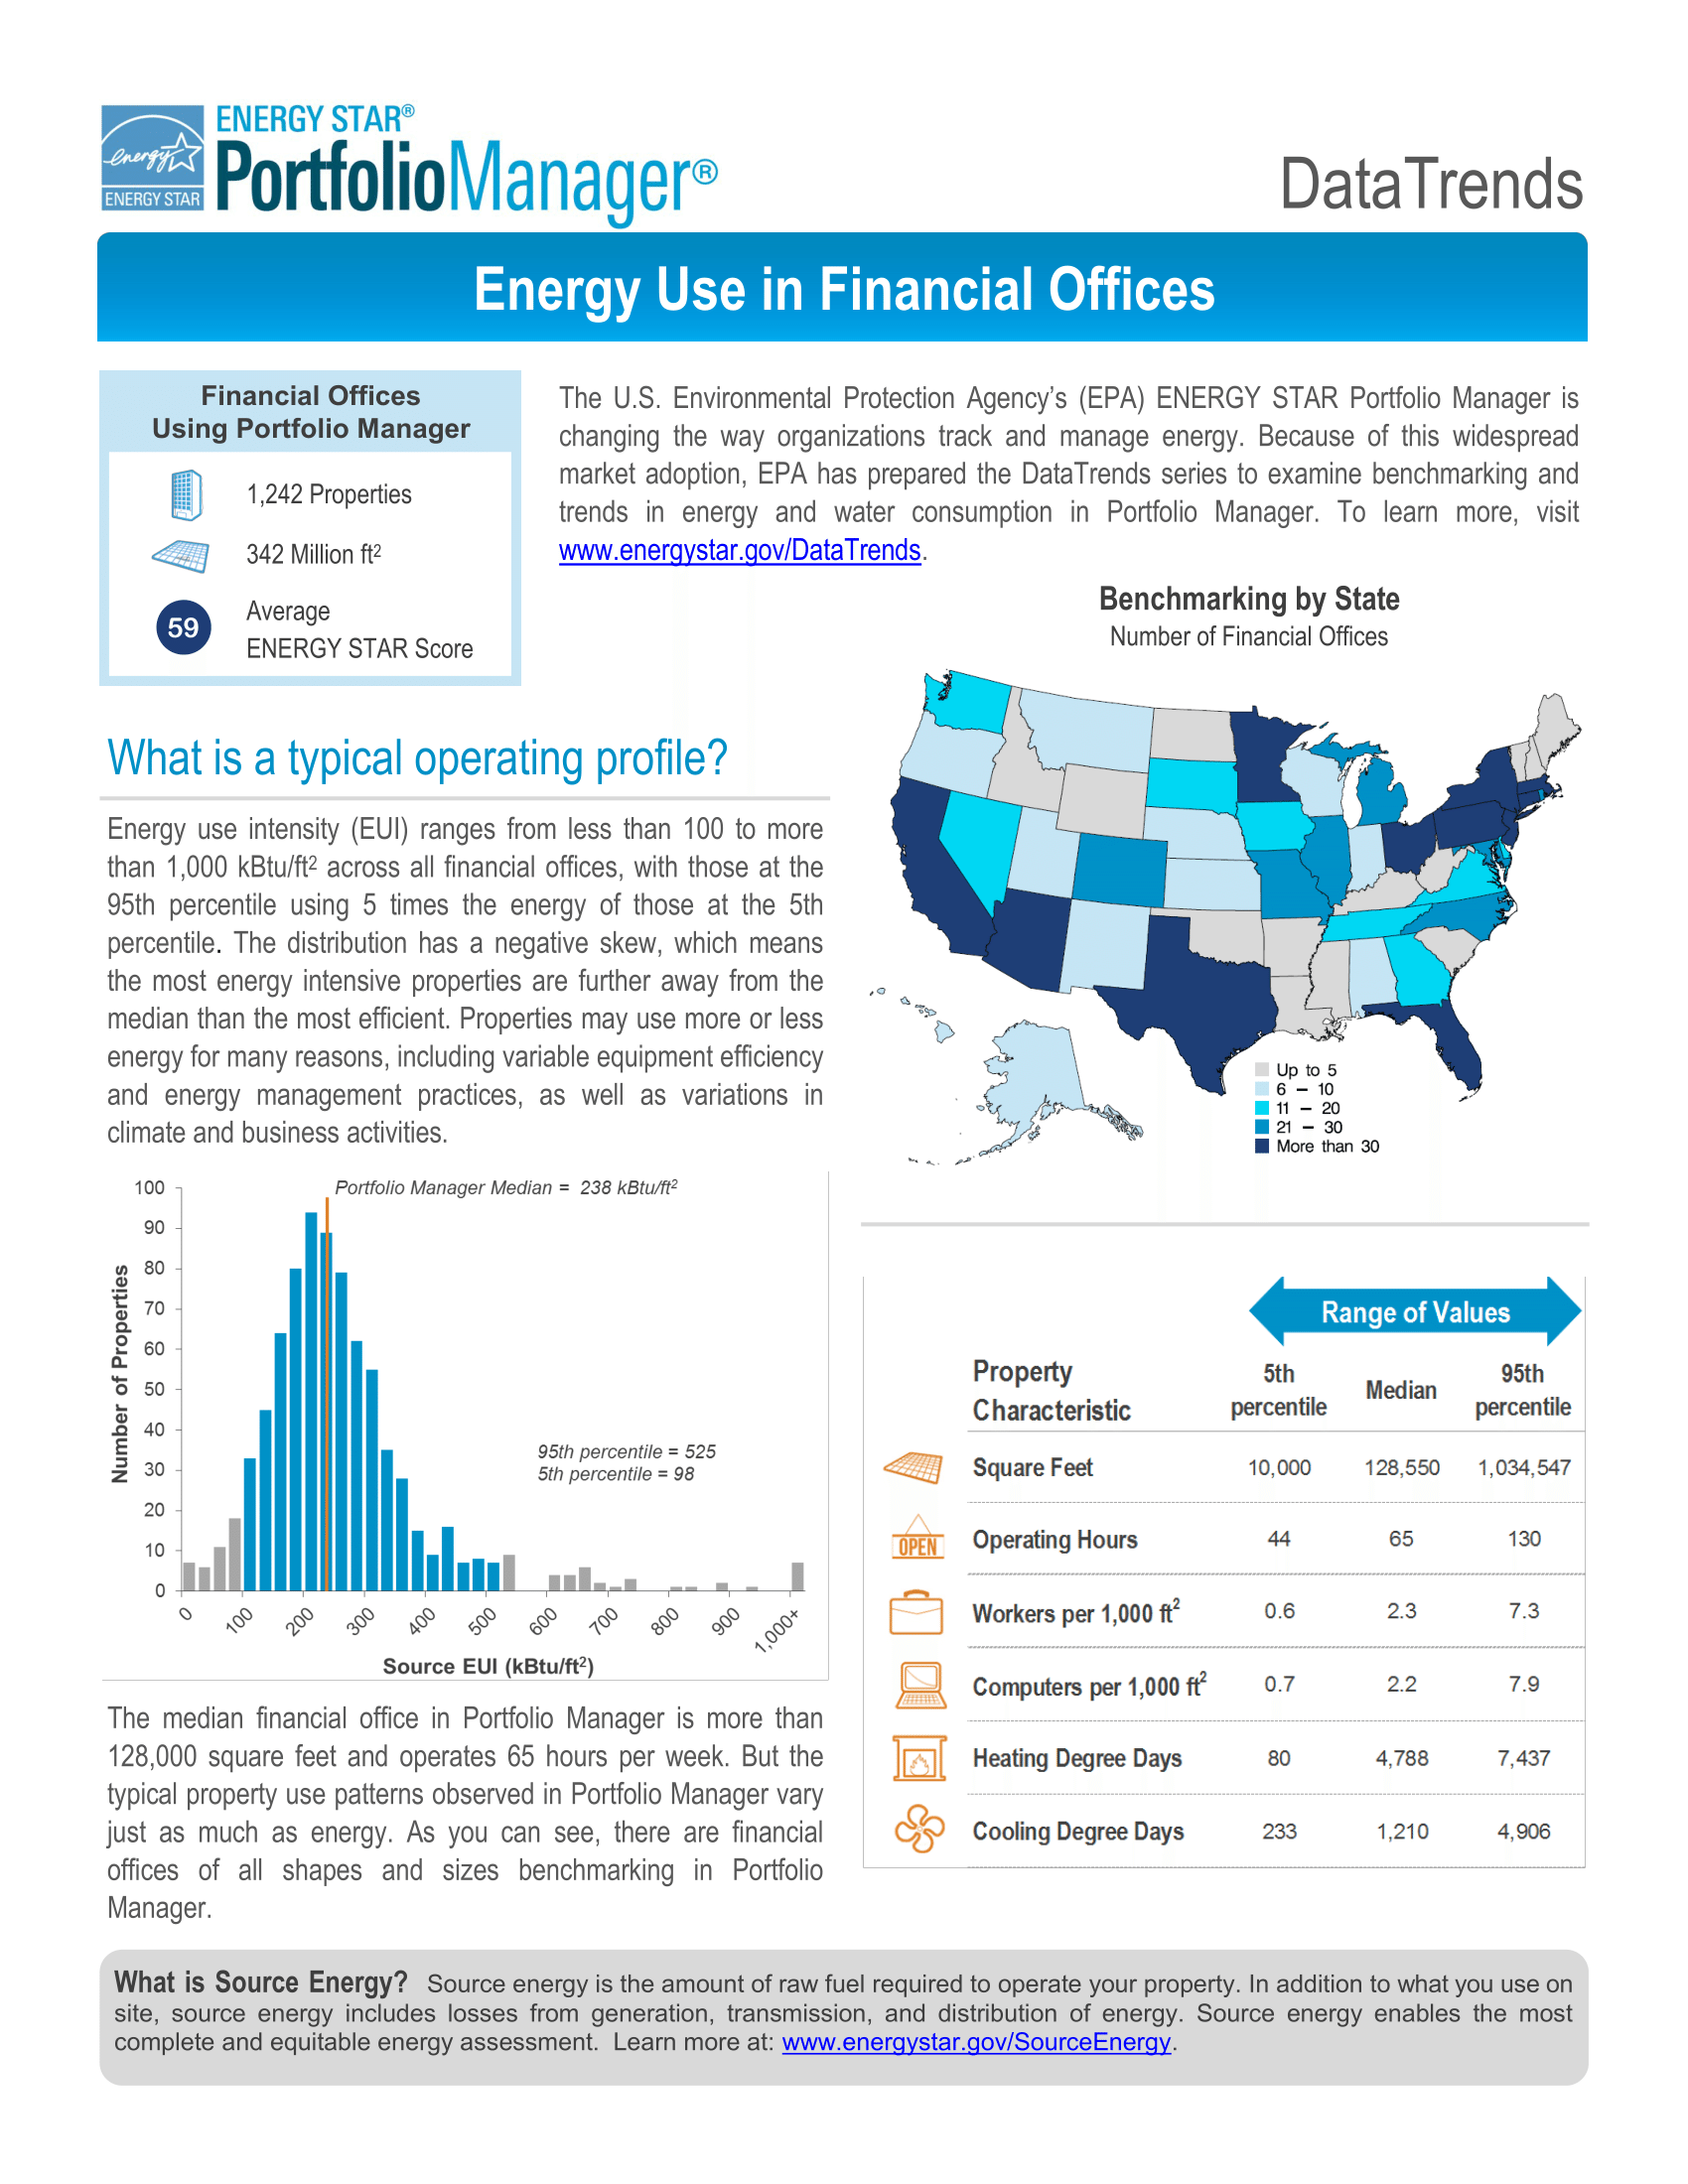 DataTrends: Energy Use in Financial Offices